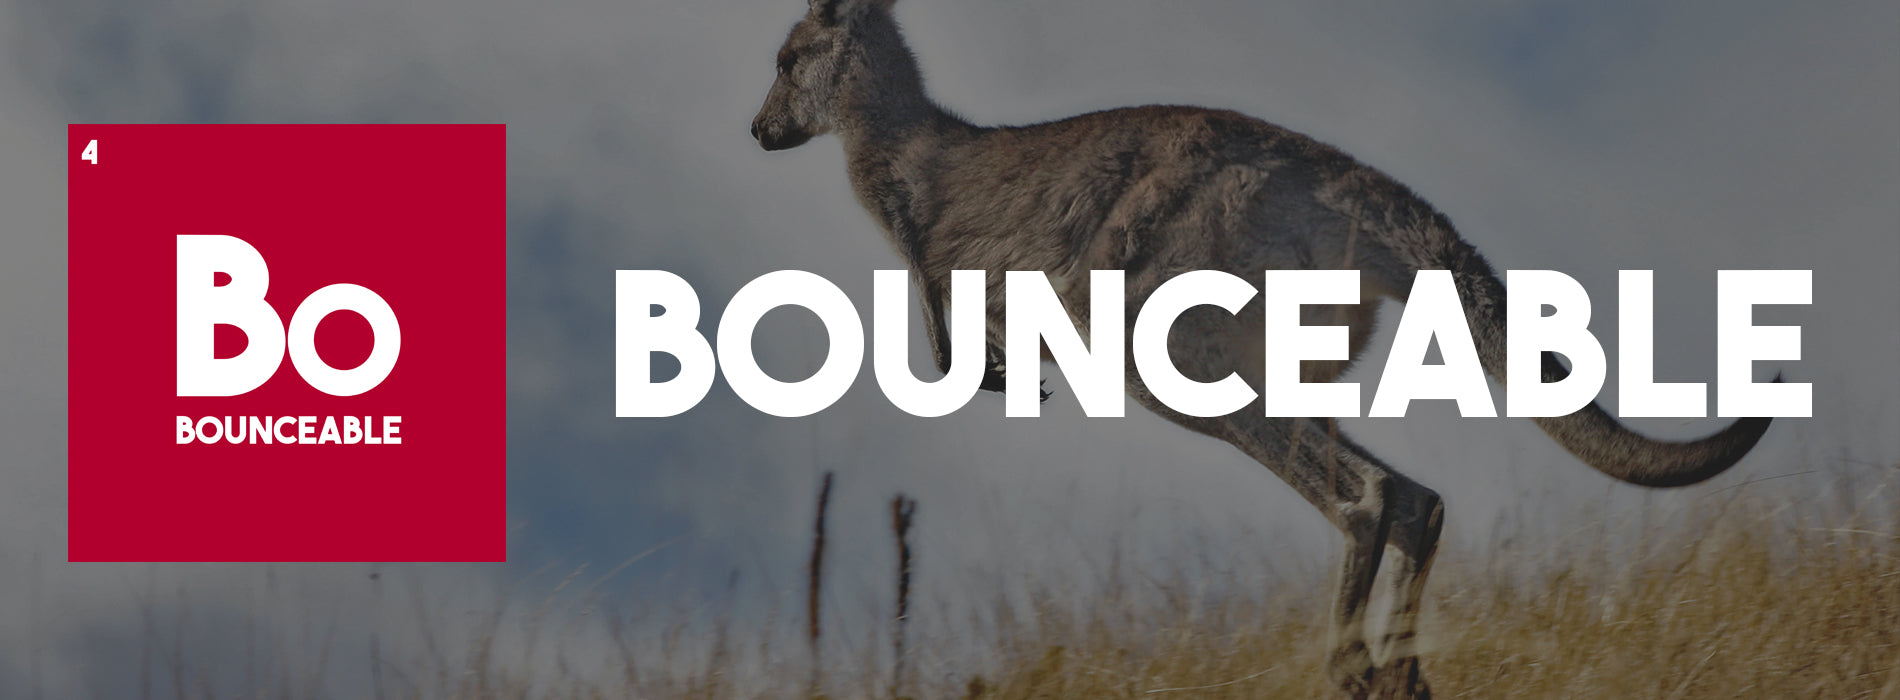 bounceable banner